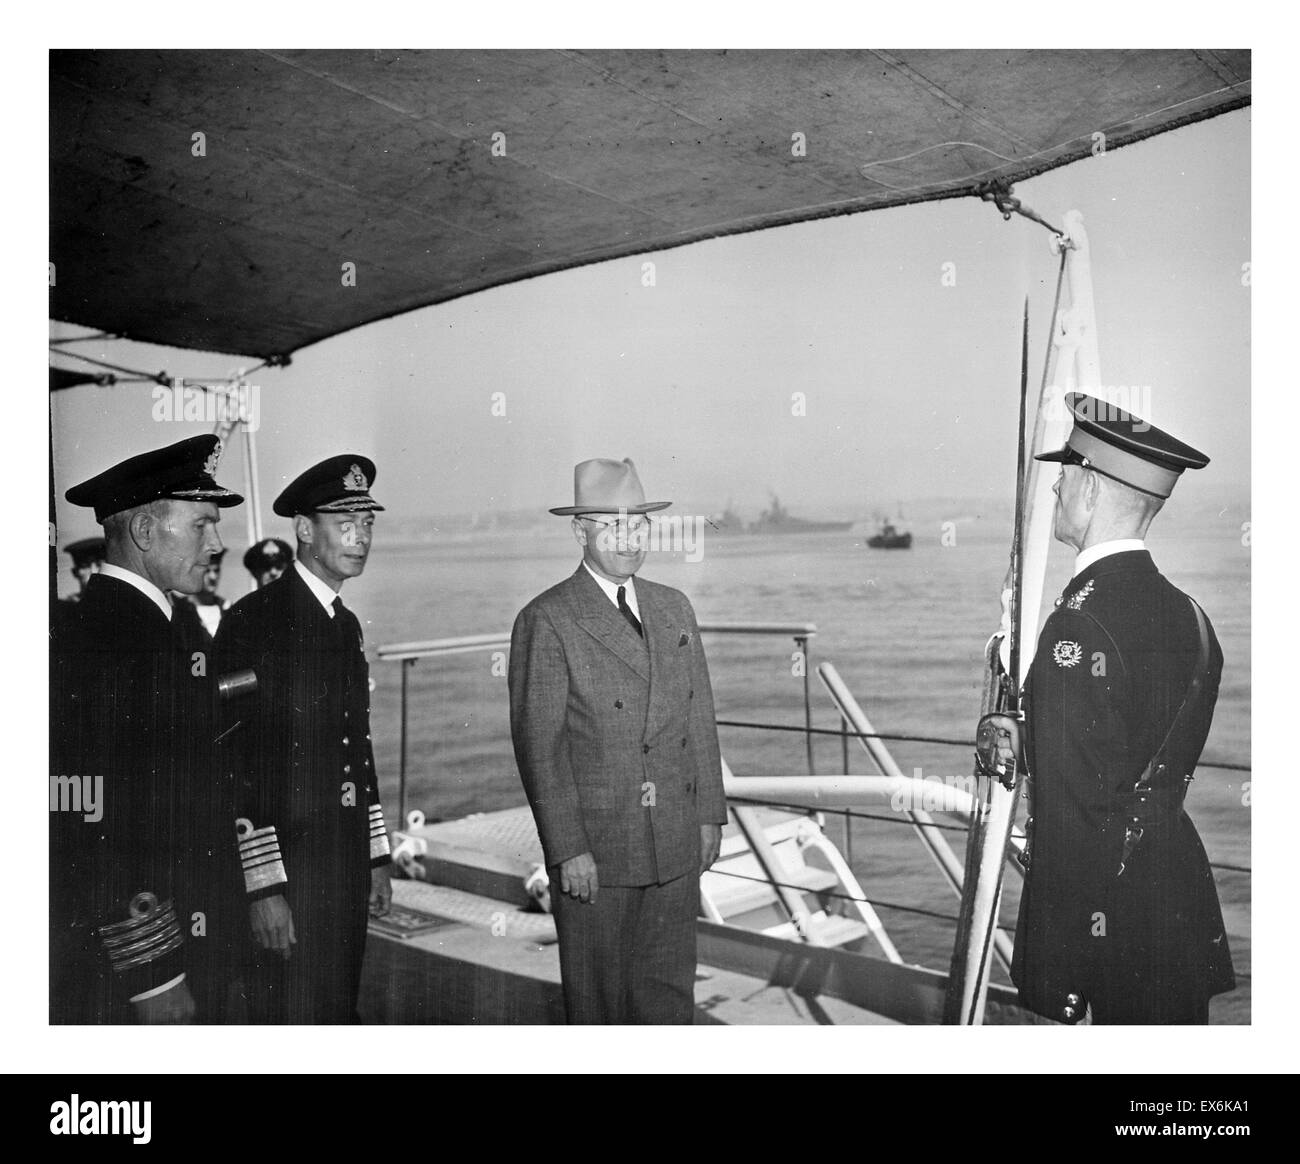 King George VI of the United Kingdom and US President Harry Truman meet on HMS Renown 1945 - Stock Image